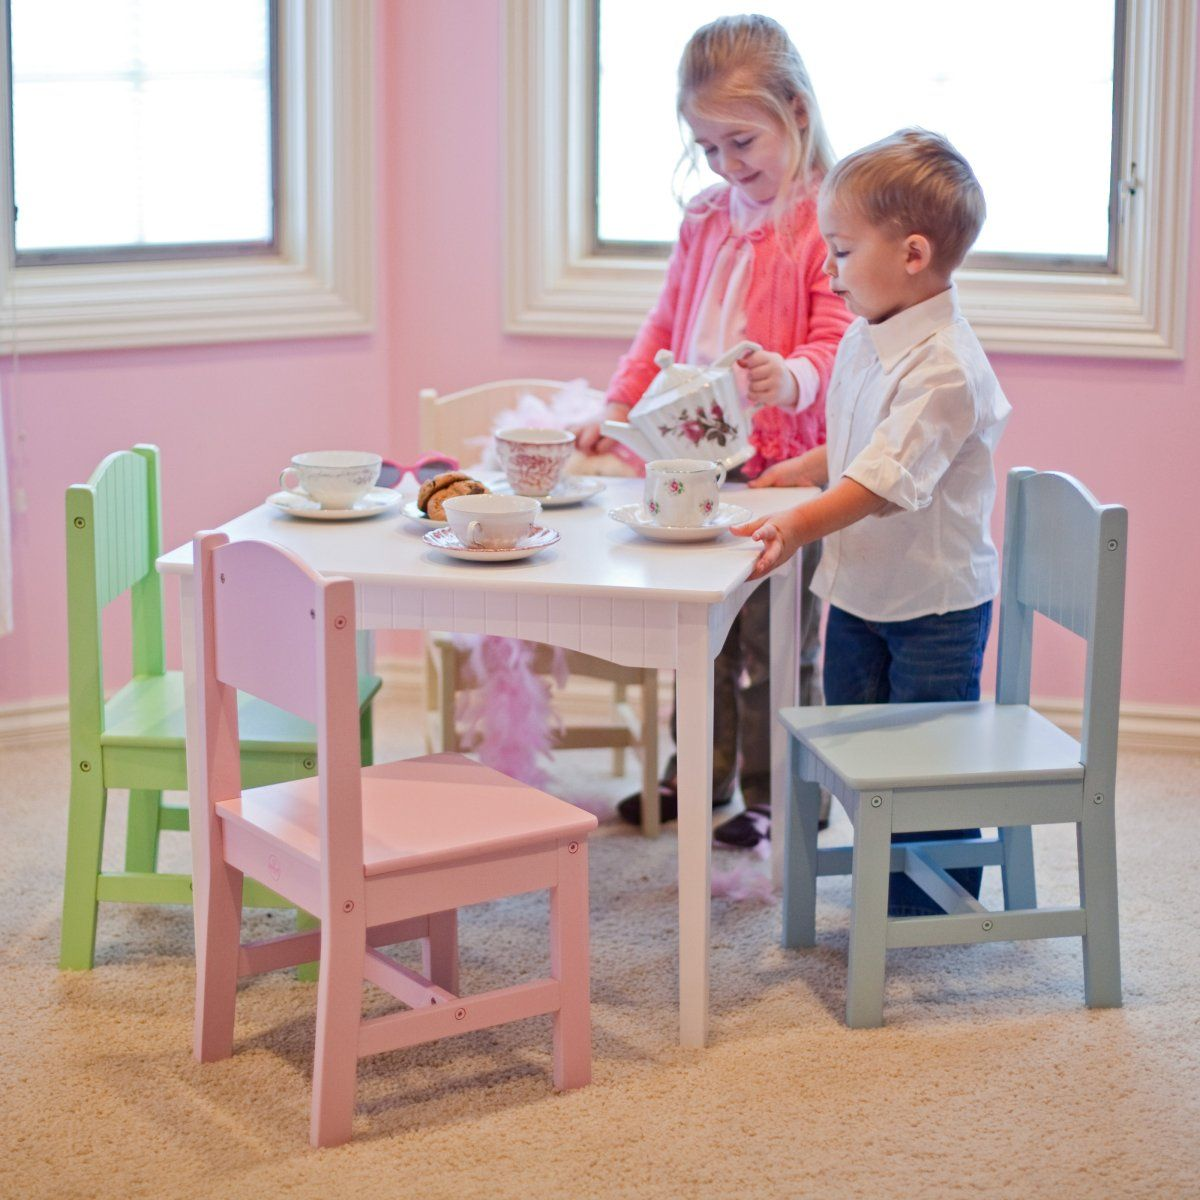 Kids Table Set Chairs Play Wood Activity Toddler Children 4 Chair Kidkraft New